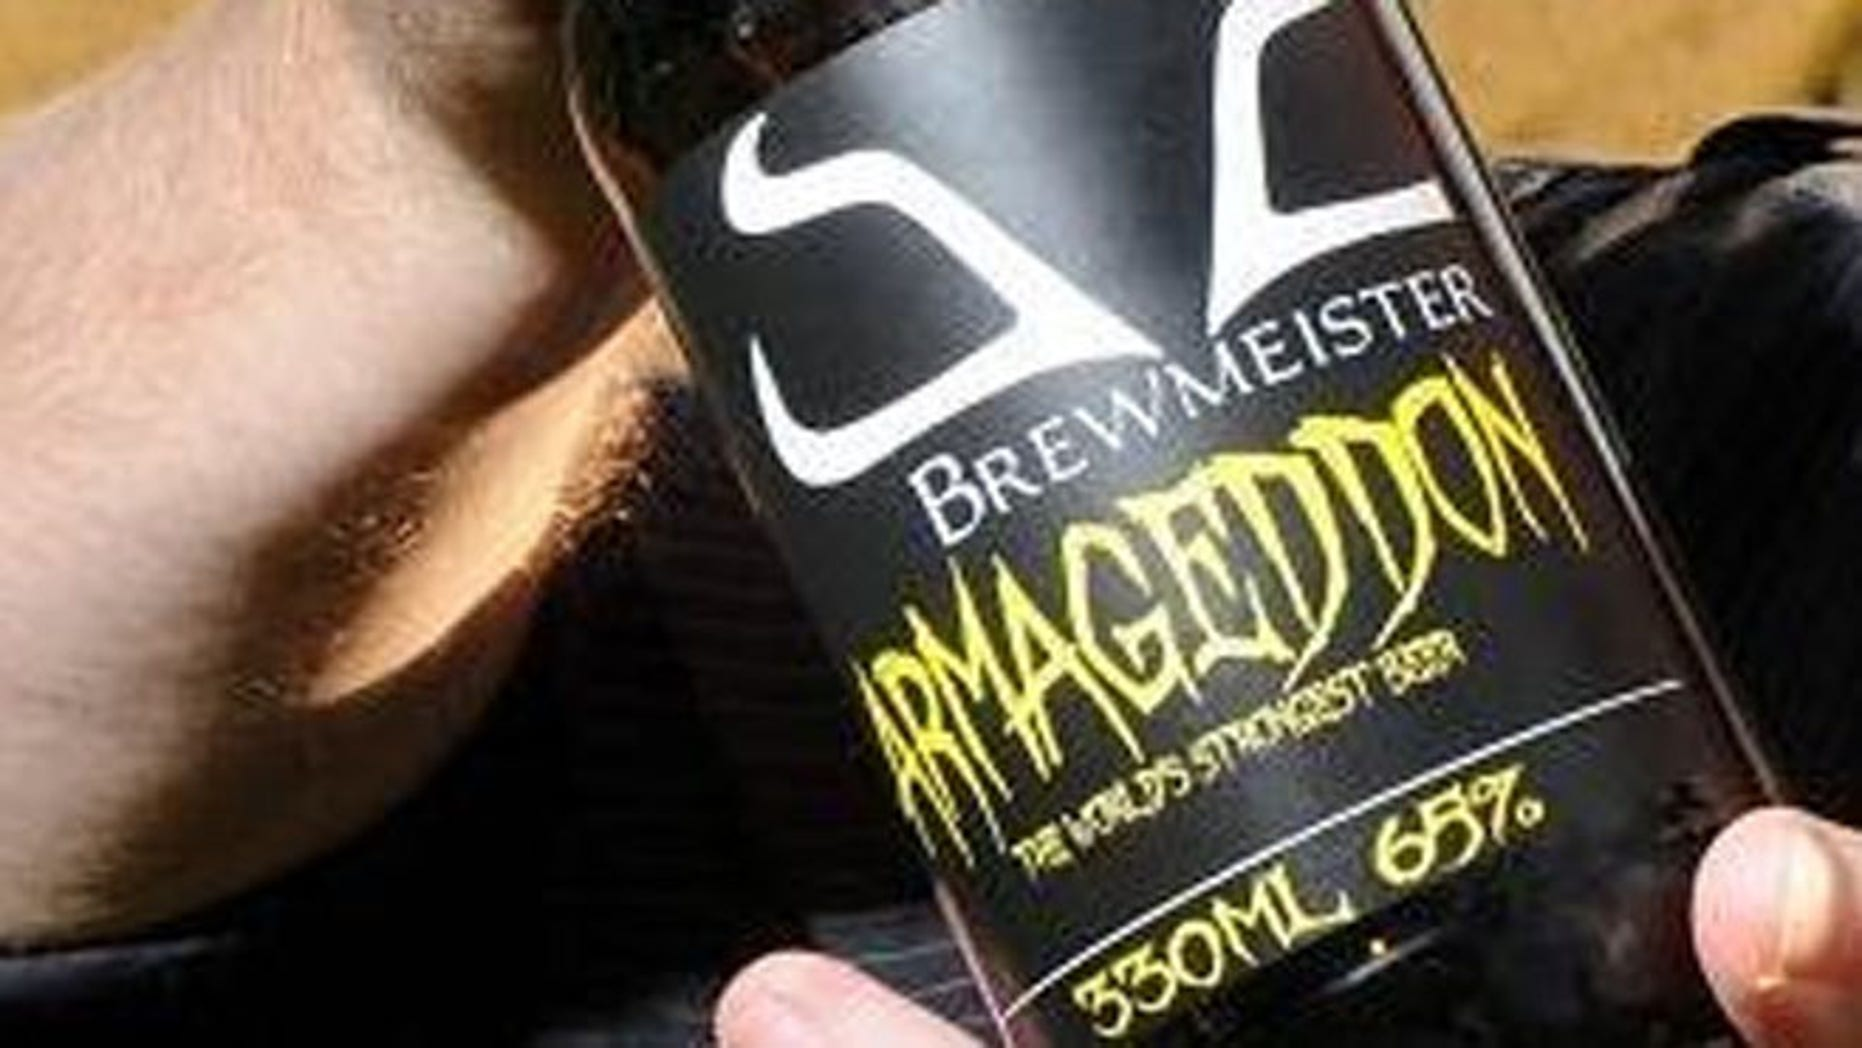 Brewmeister Brewery has produced the world's strongest beer with a 65 percent ABV.